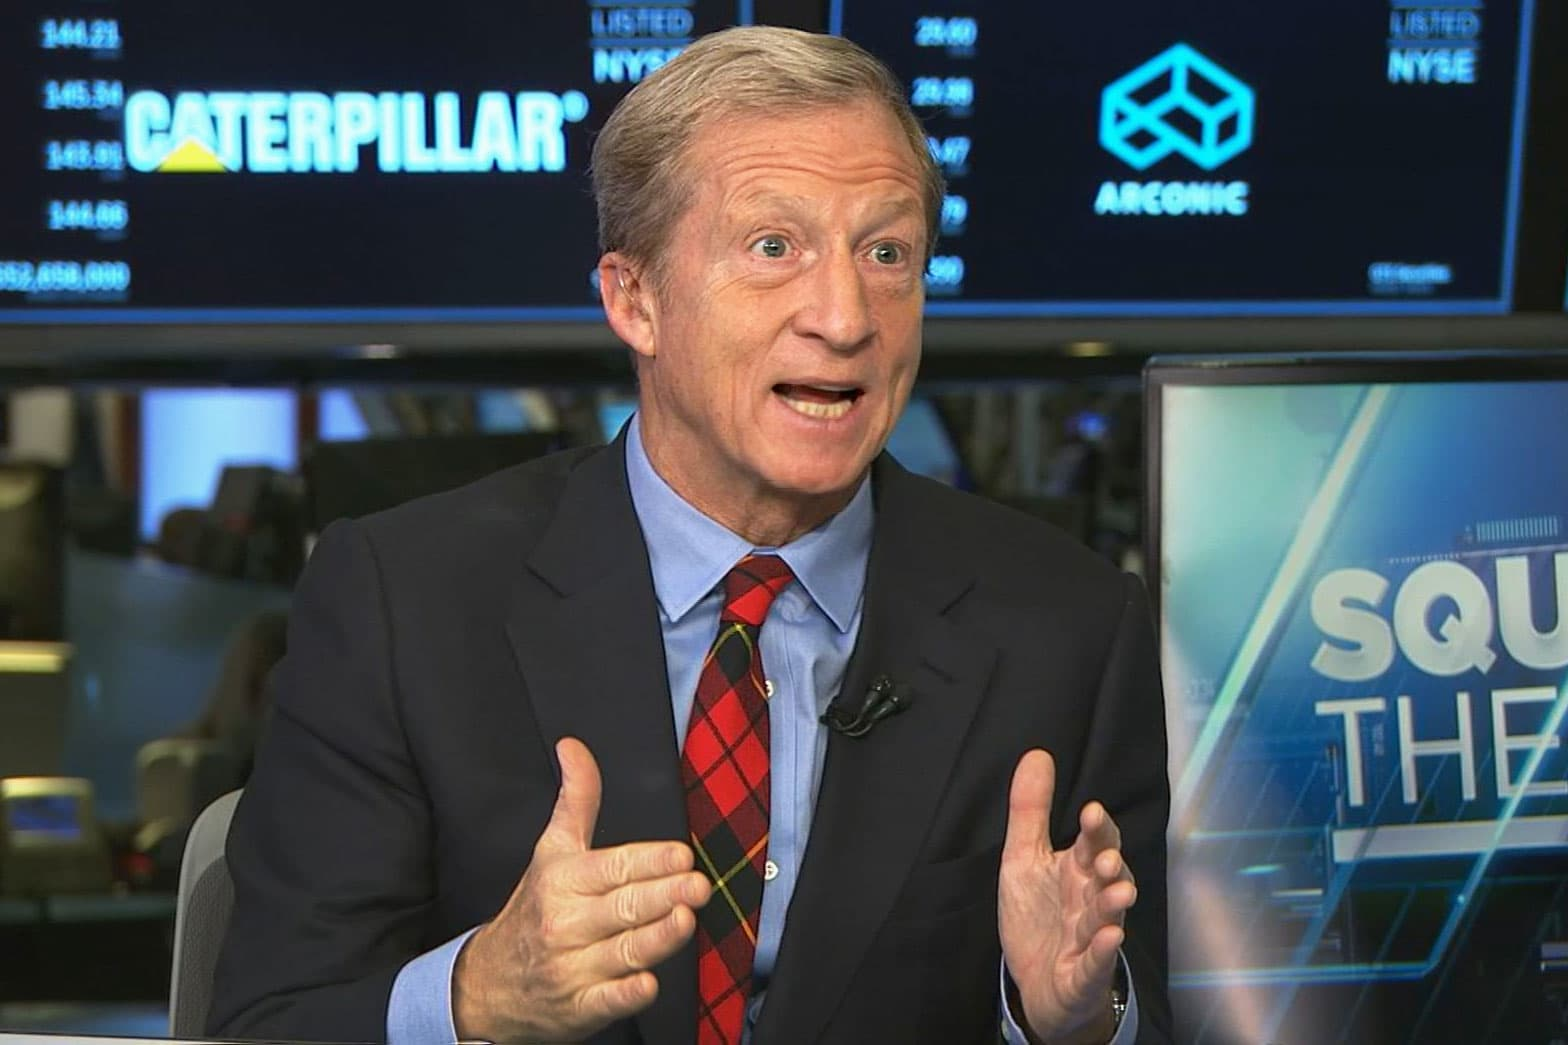 Billionaire 2020 candidate Tom Steyer encourages Mike Bloomberg to support wealth tax if he enters presidential race